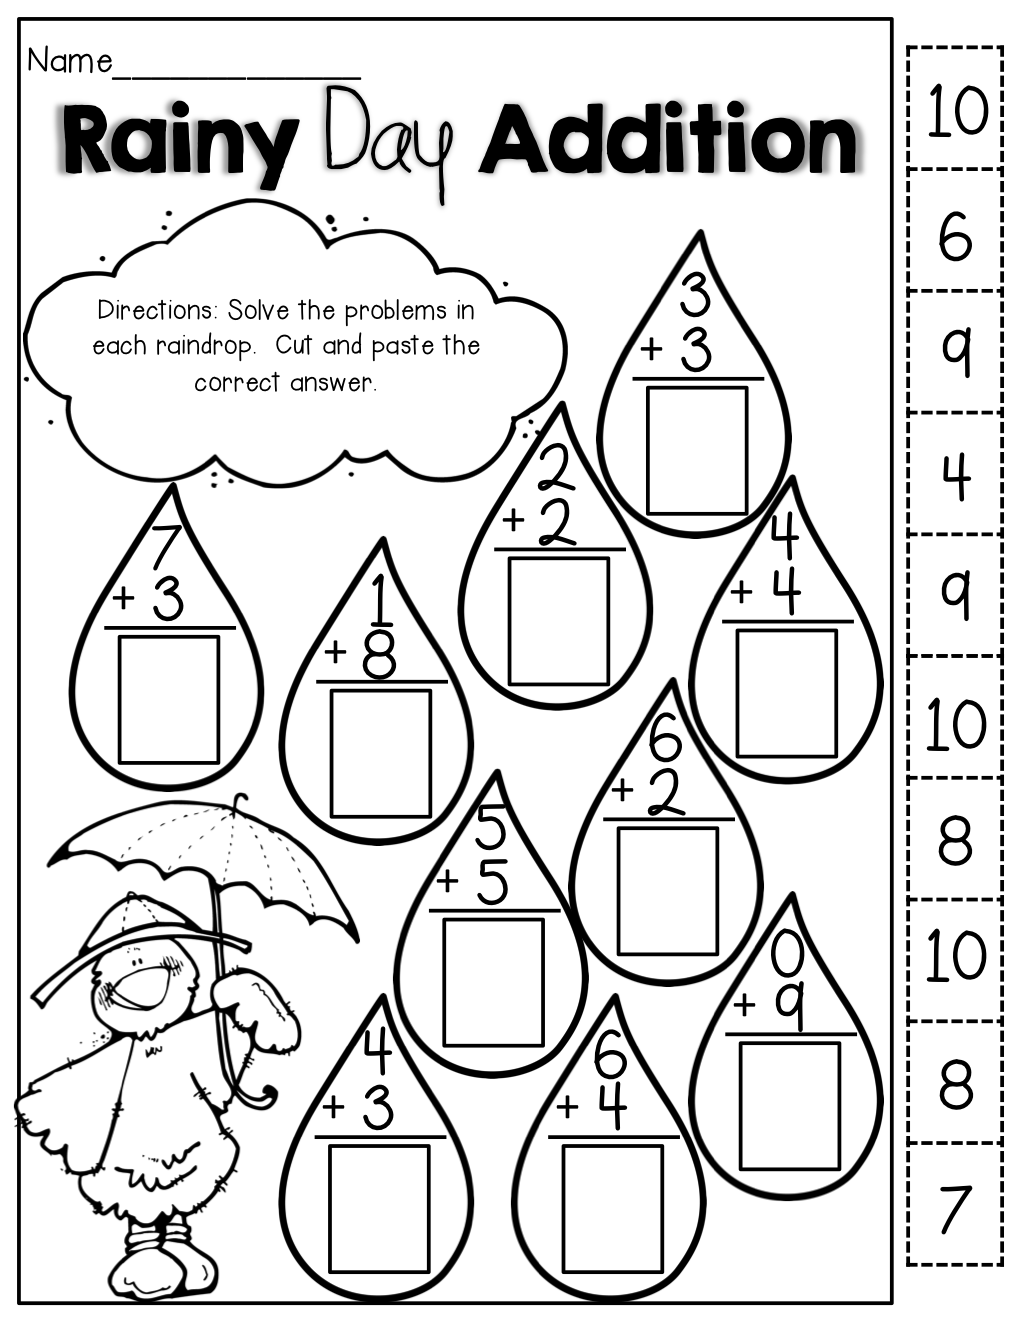 Rainy Day Addition cut and paste – Kindergarten Worksheets Cut and Paste